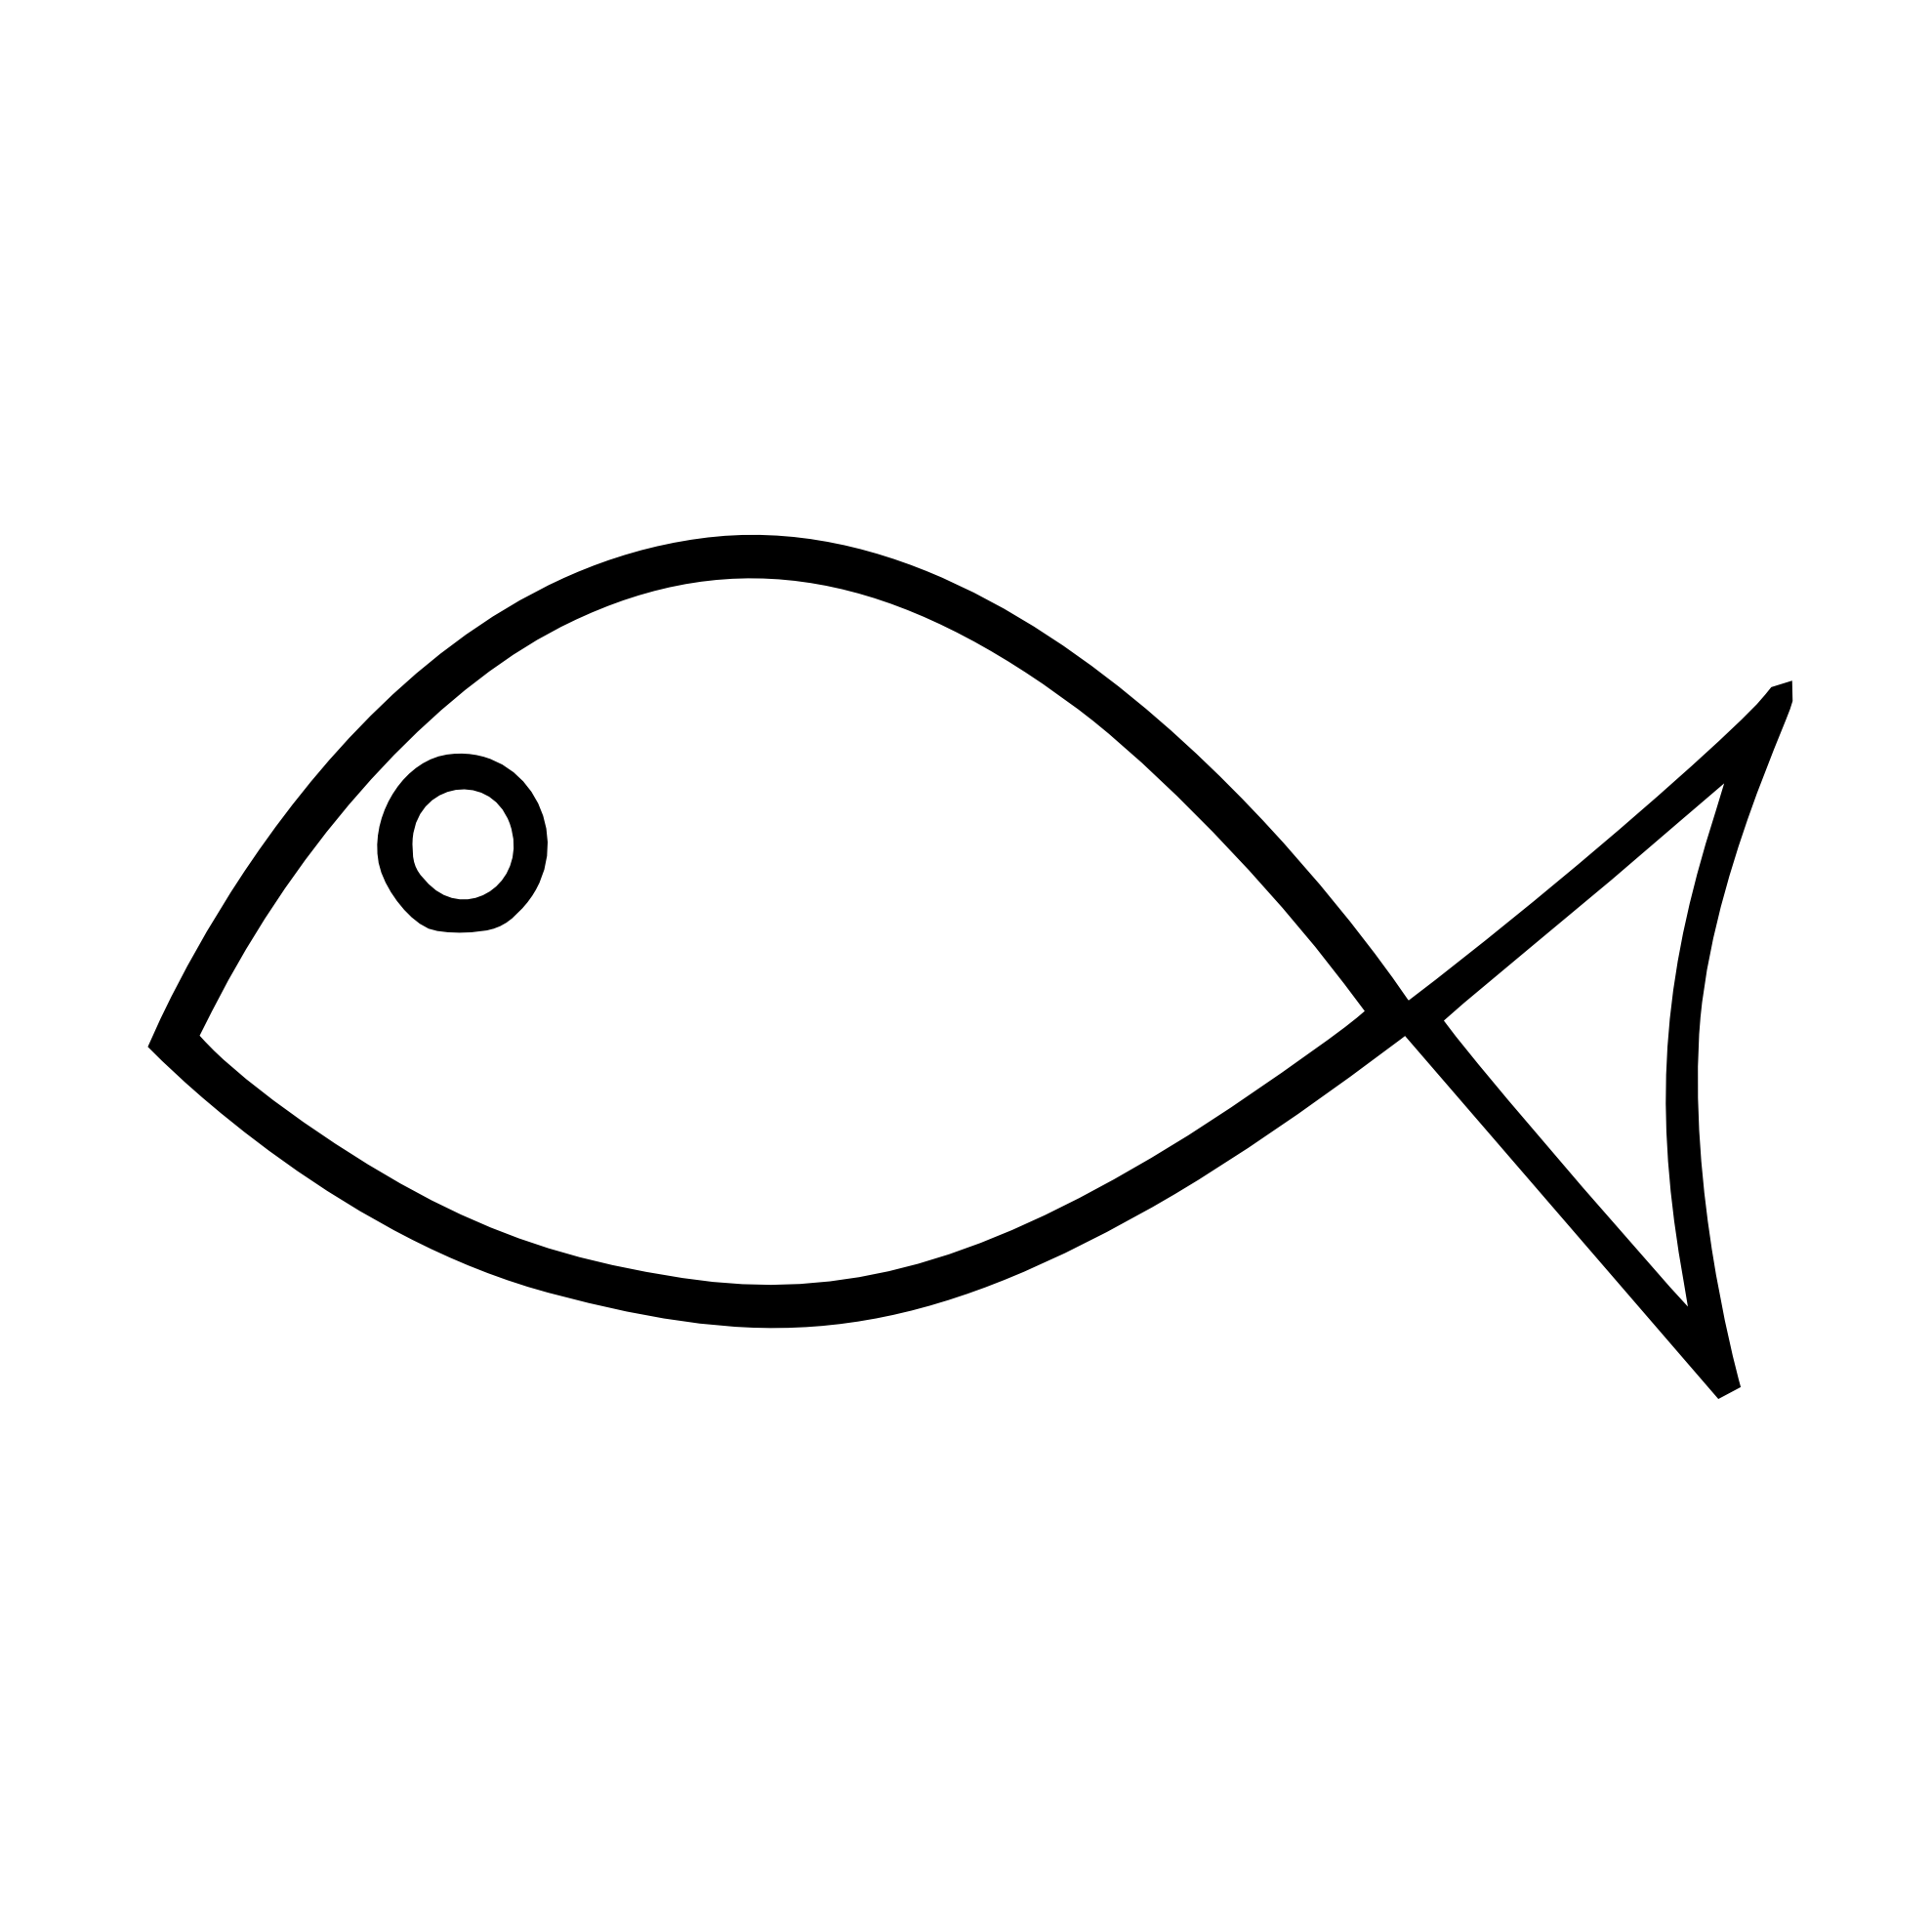 clipart royalty free stock Fish drawings google search. Fishing hook clipart black and white